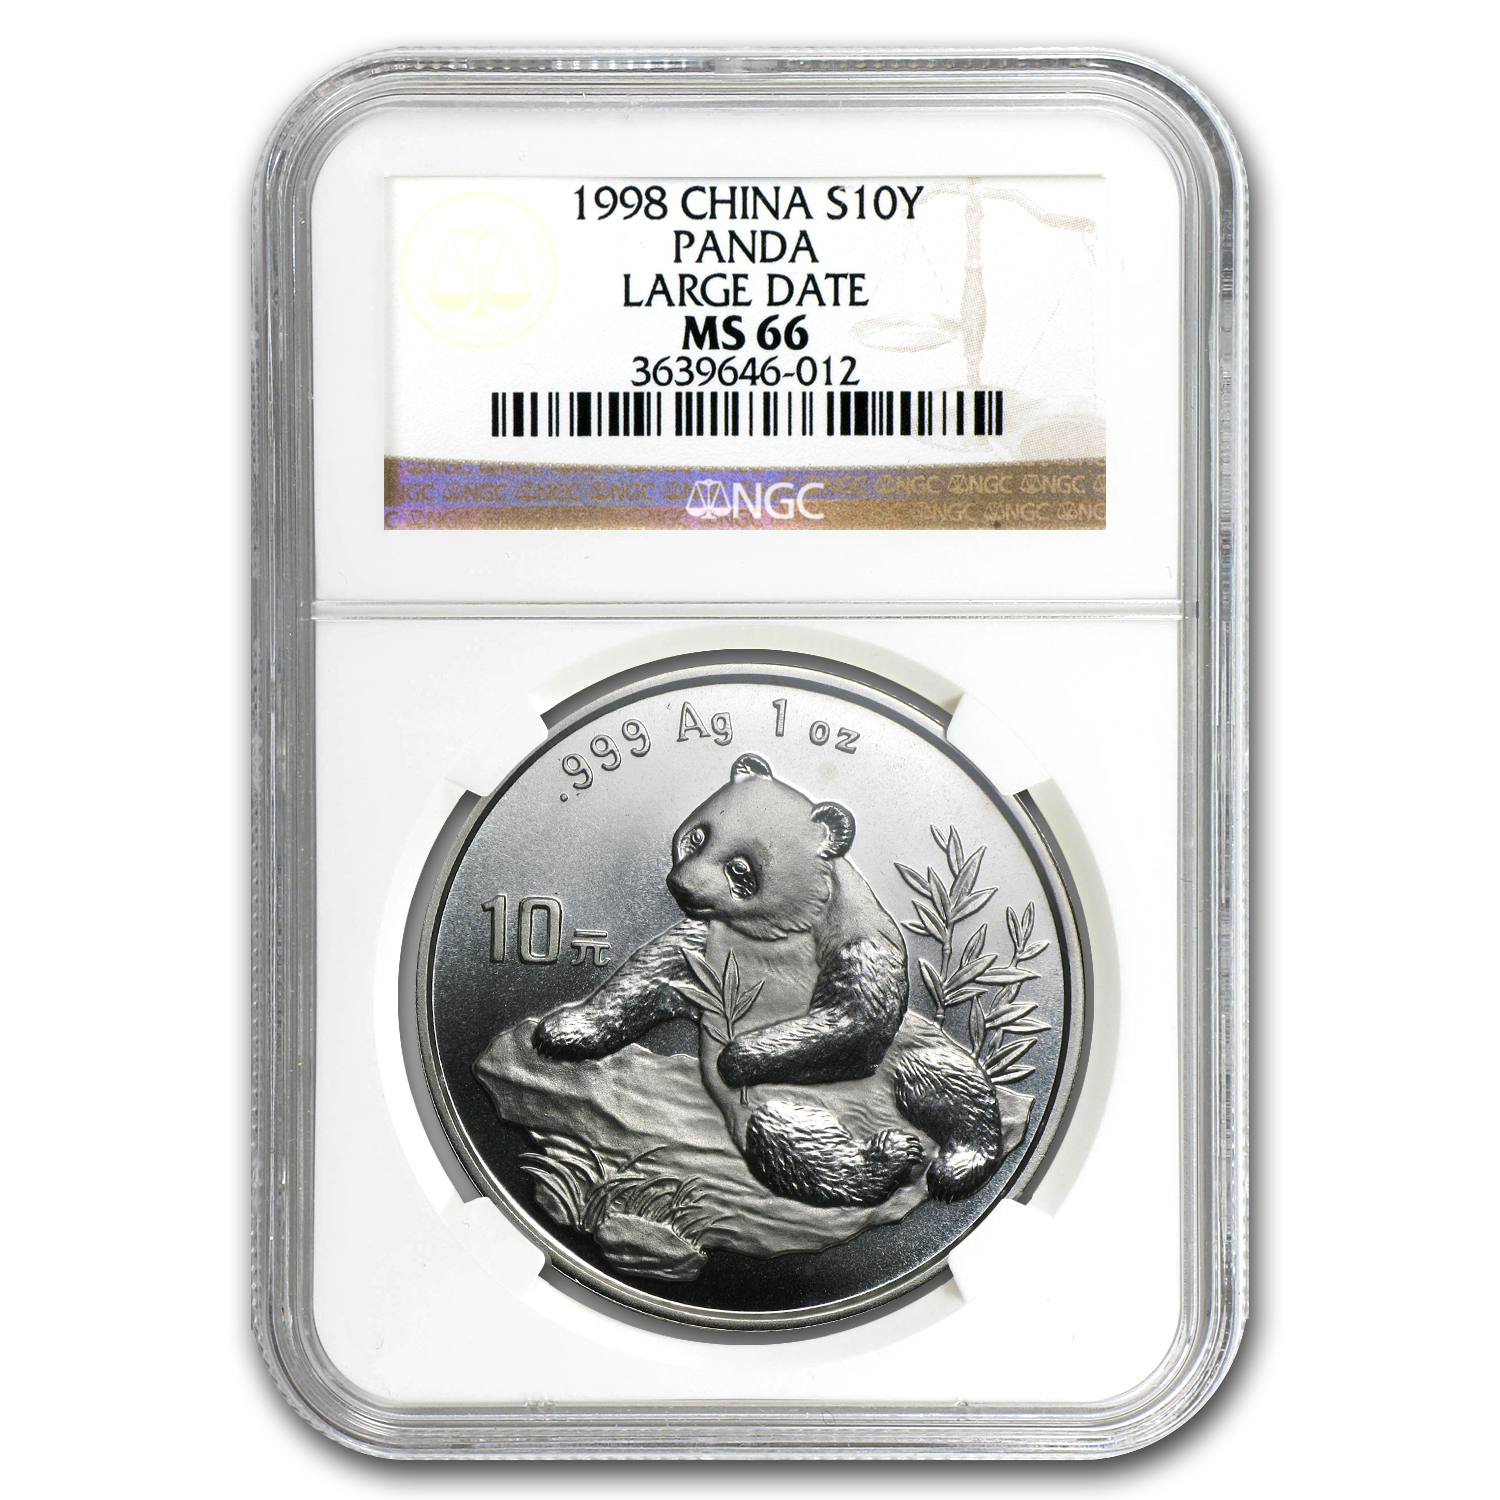 1998 China 1 oz Silver Panda MS-66 NGC (Large Date)